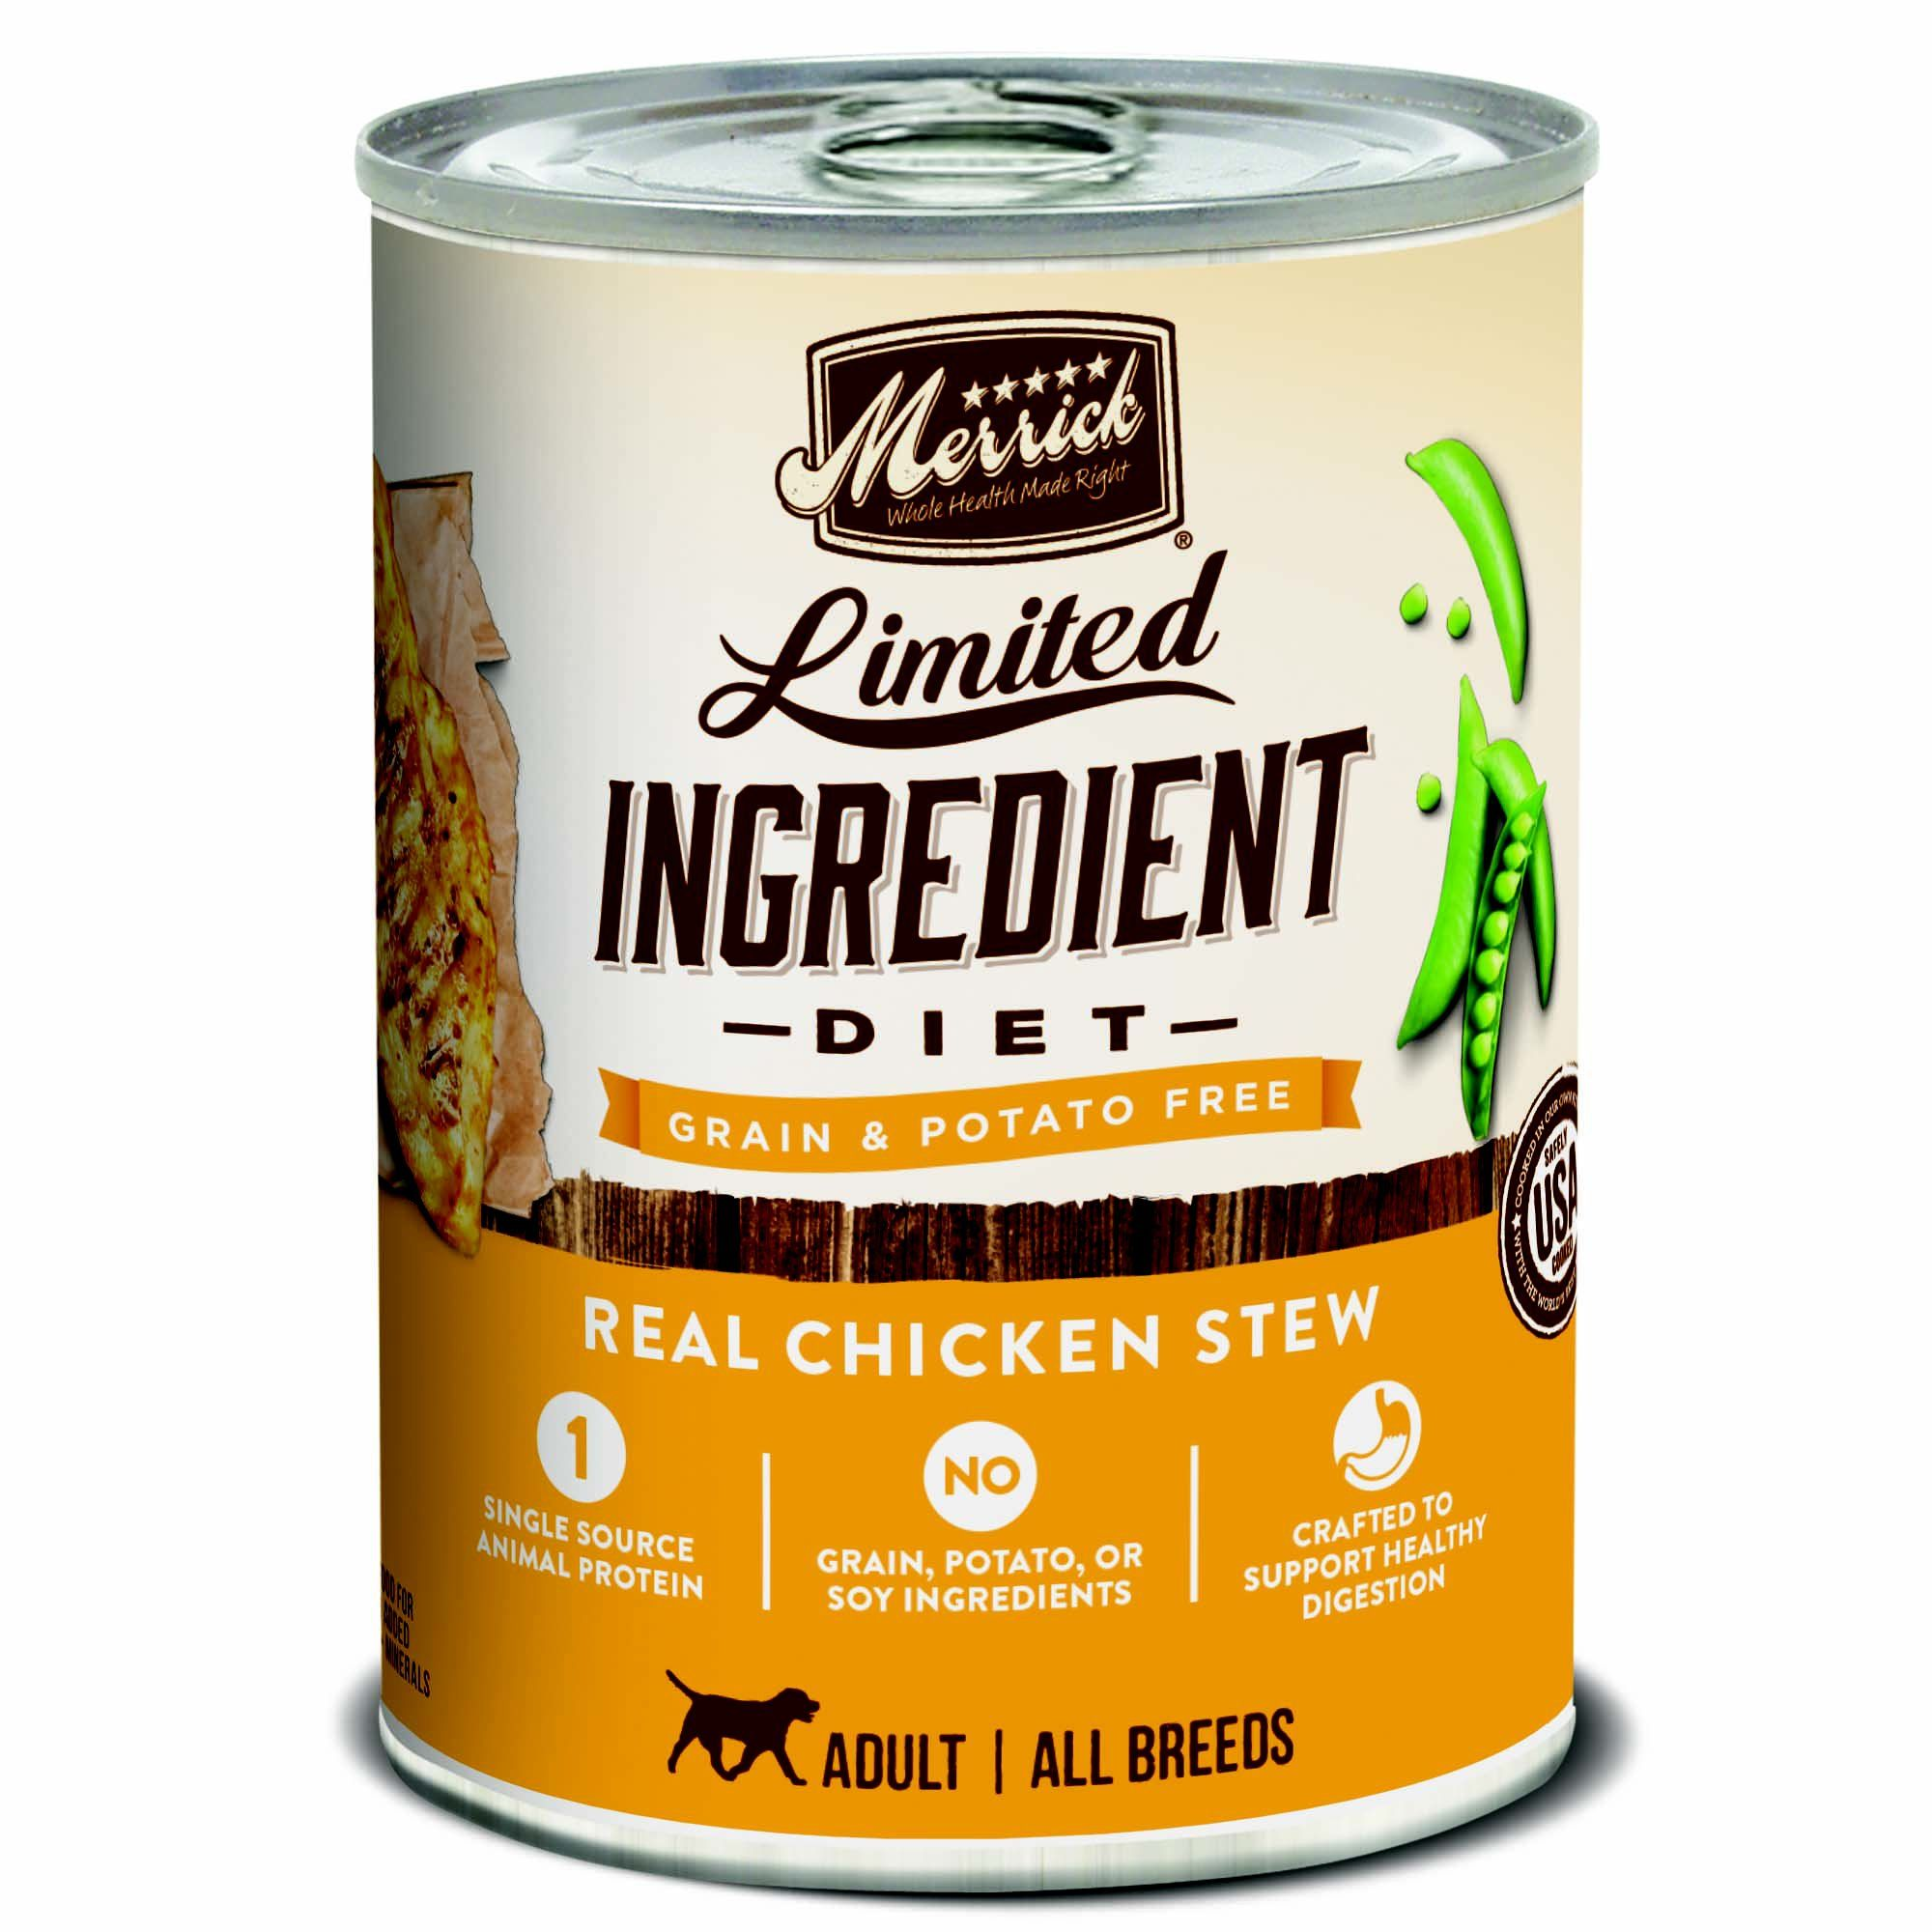 Merrick Limited Ingredient Diet Grain Free Real Chicken Canned Dog